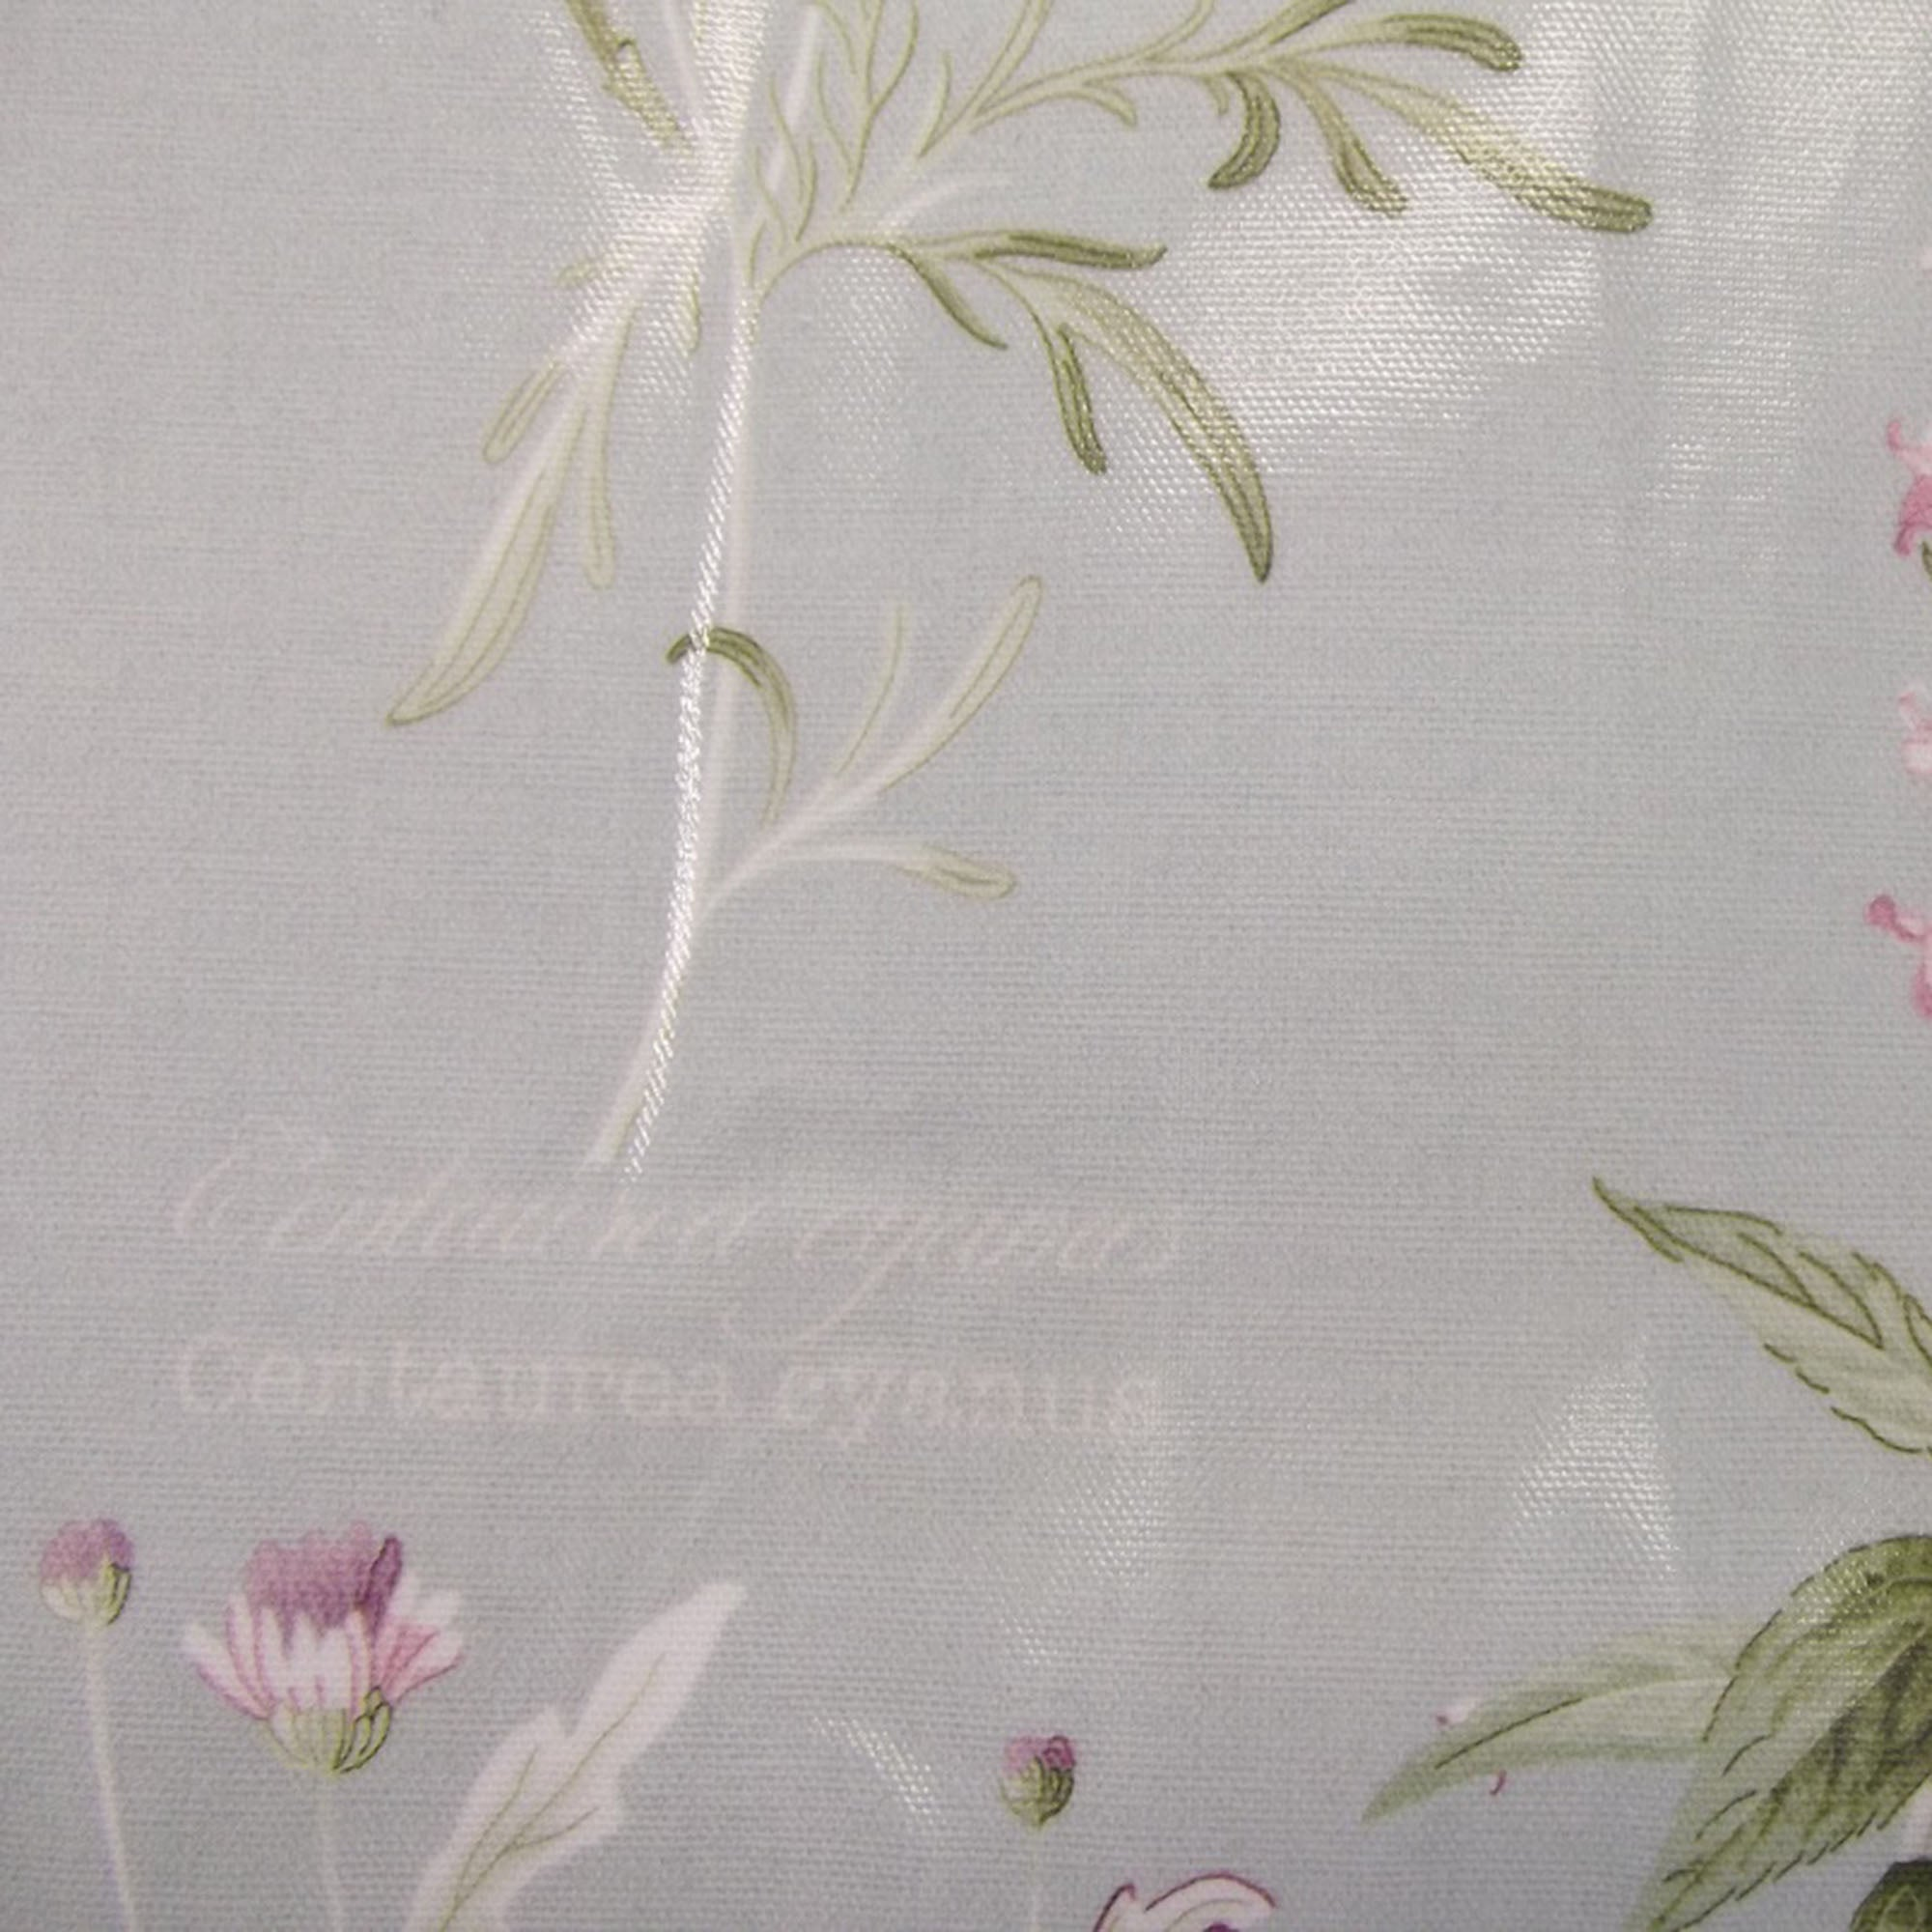 Photo of Botanical garden pvc fabric duck egg blue